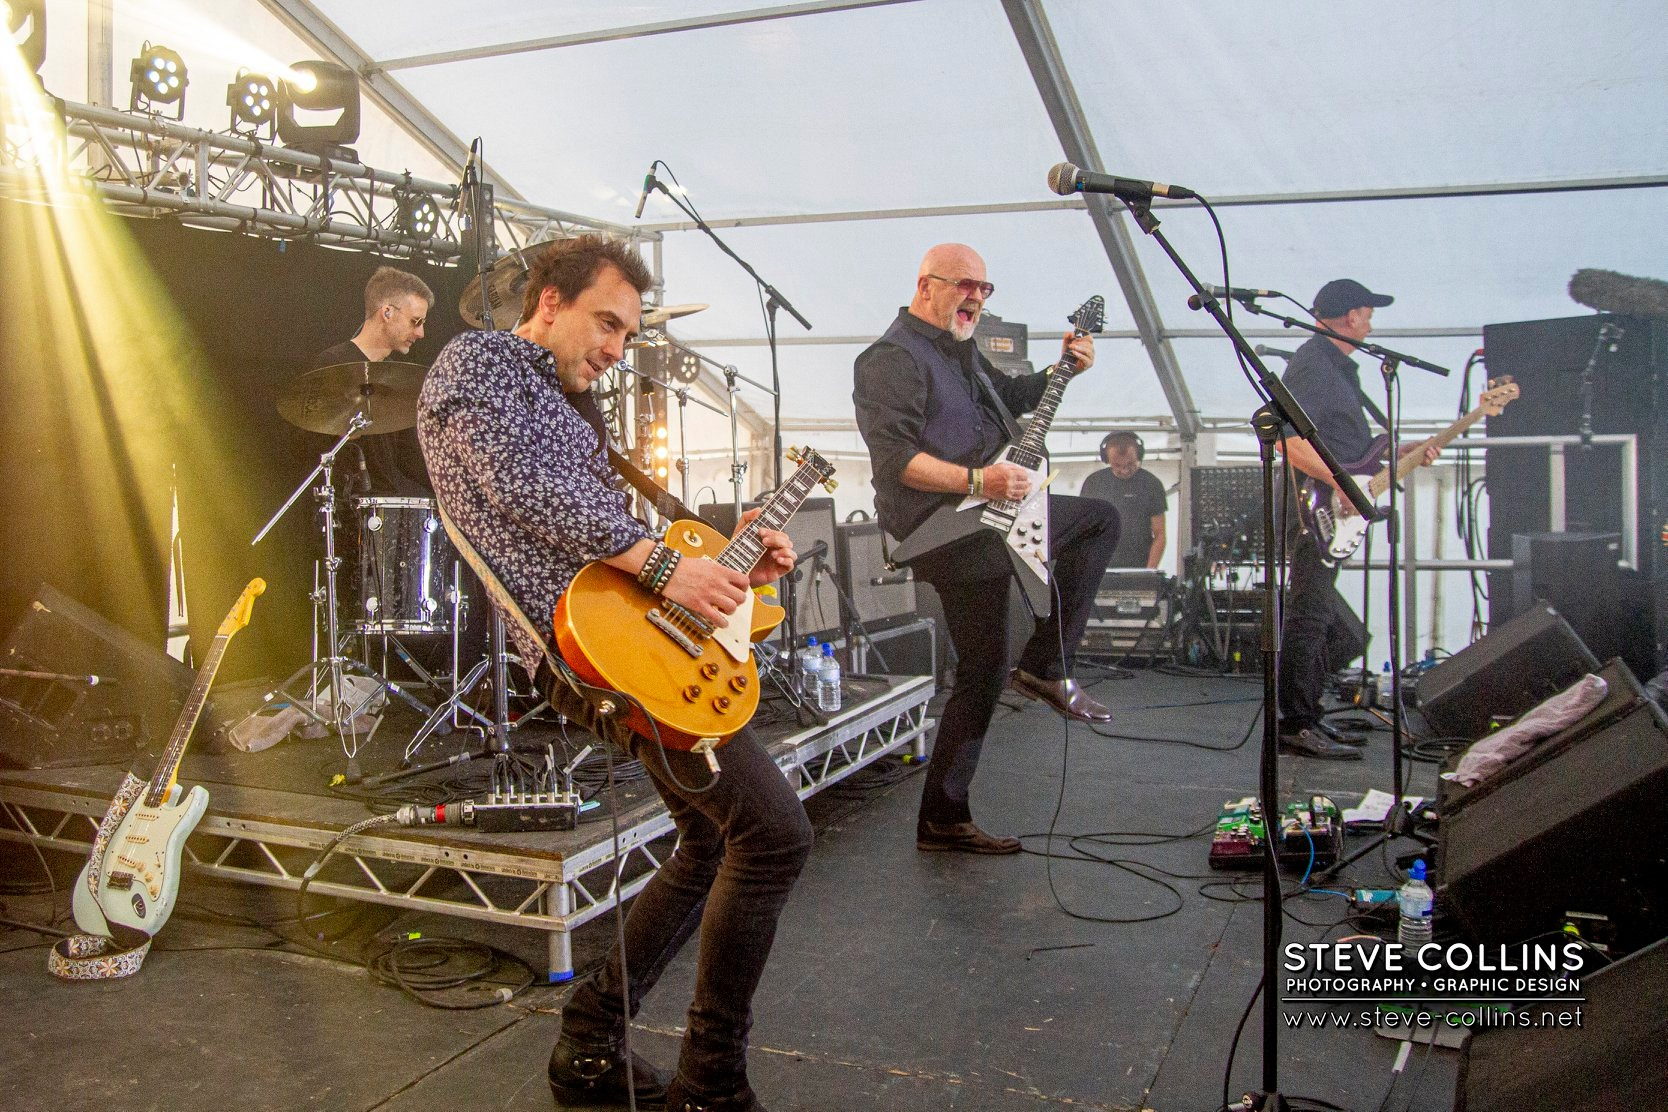 Wishbone Ash made the Bash their only UK festival in 2019...their own 50th anniversary year. Photo courtesy of Steve Collins.